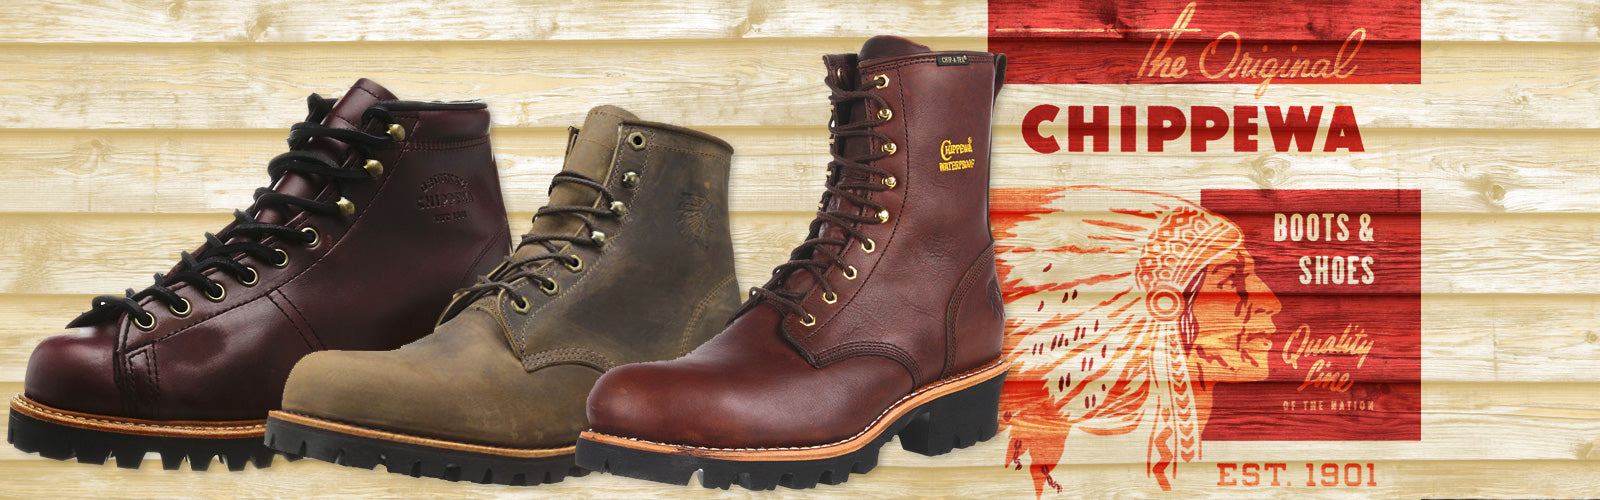 Chippewa Boots only at Coastal Boot